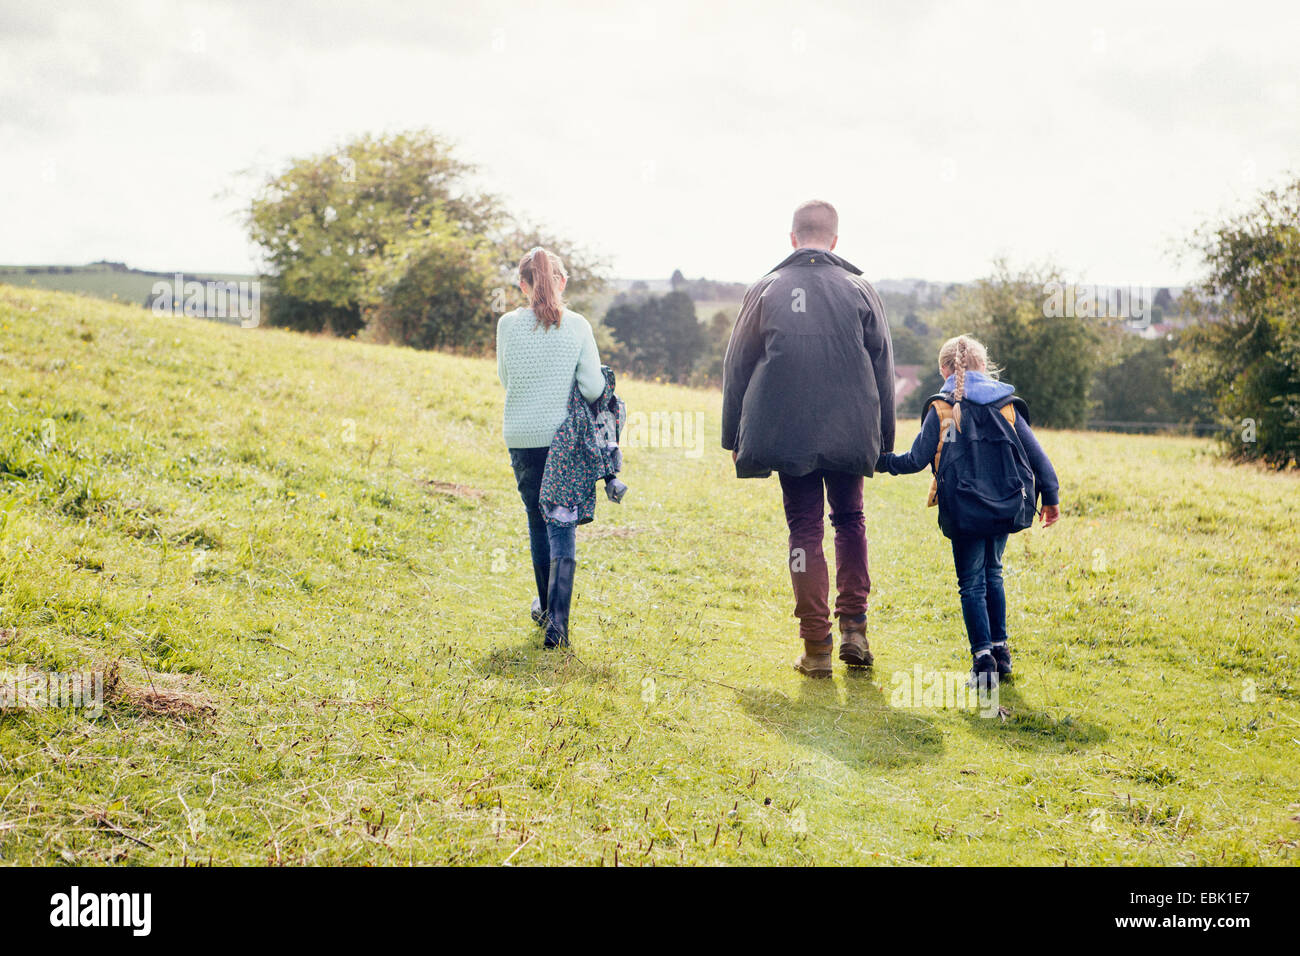 Father and daughters walking in field - Stock Image